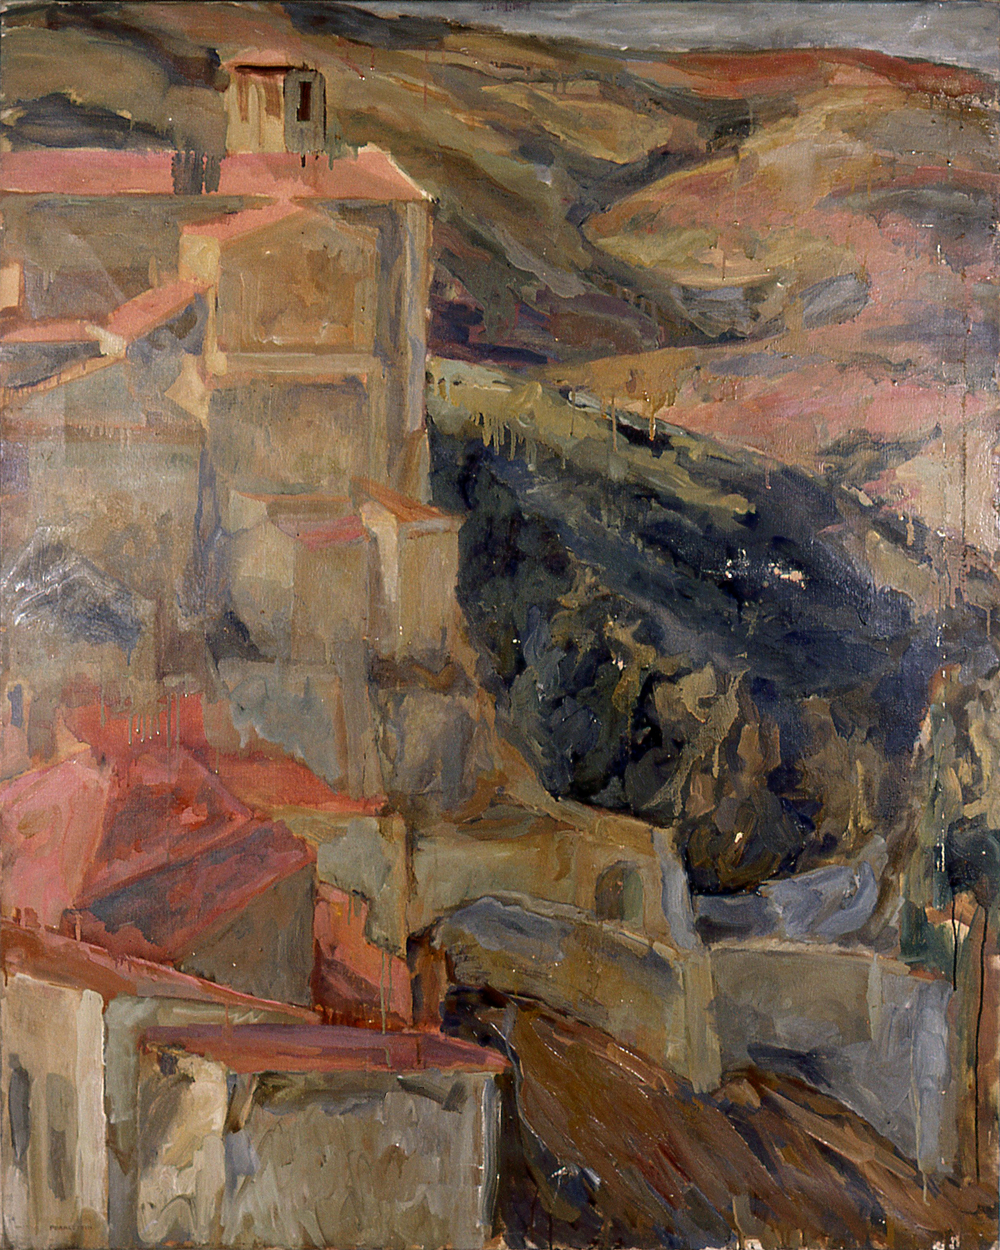 Umbria , 1958 Oil on canvas 48.5 x 39 in